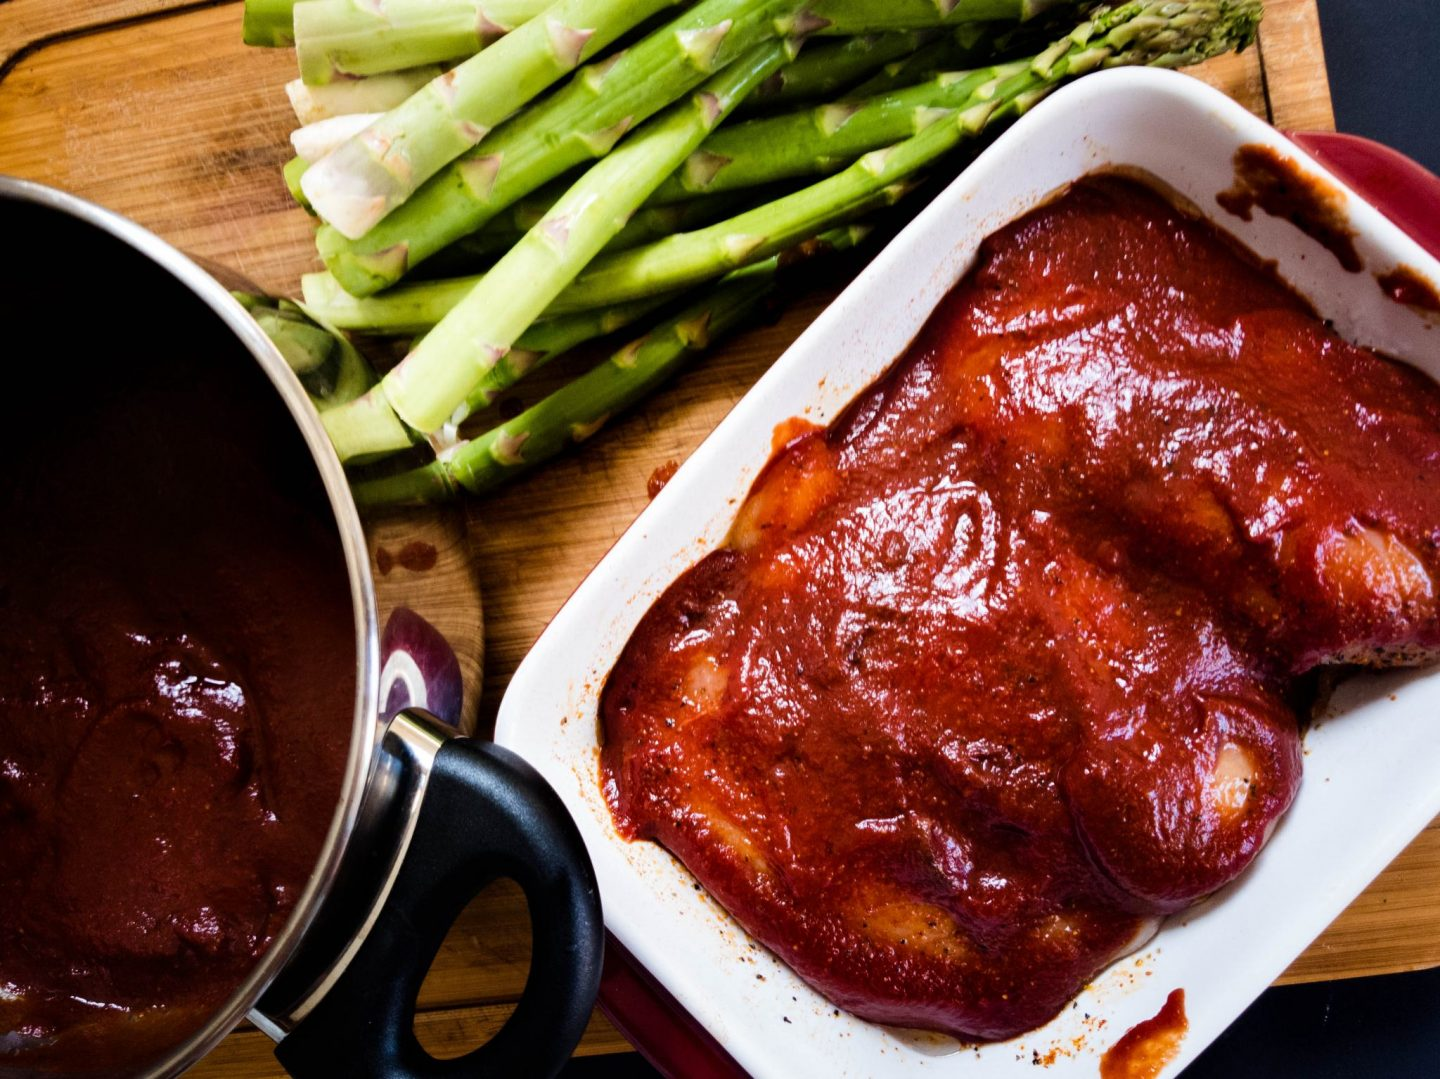 basted maple bourbon bbq chicken